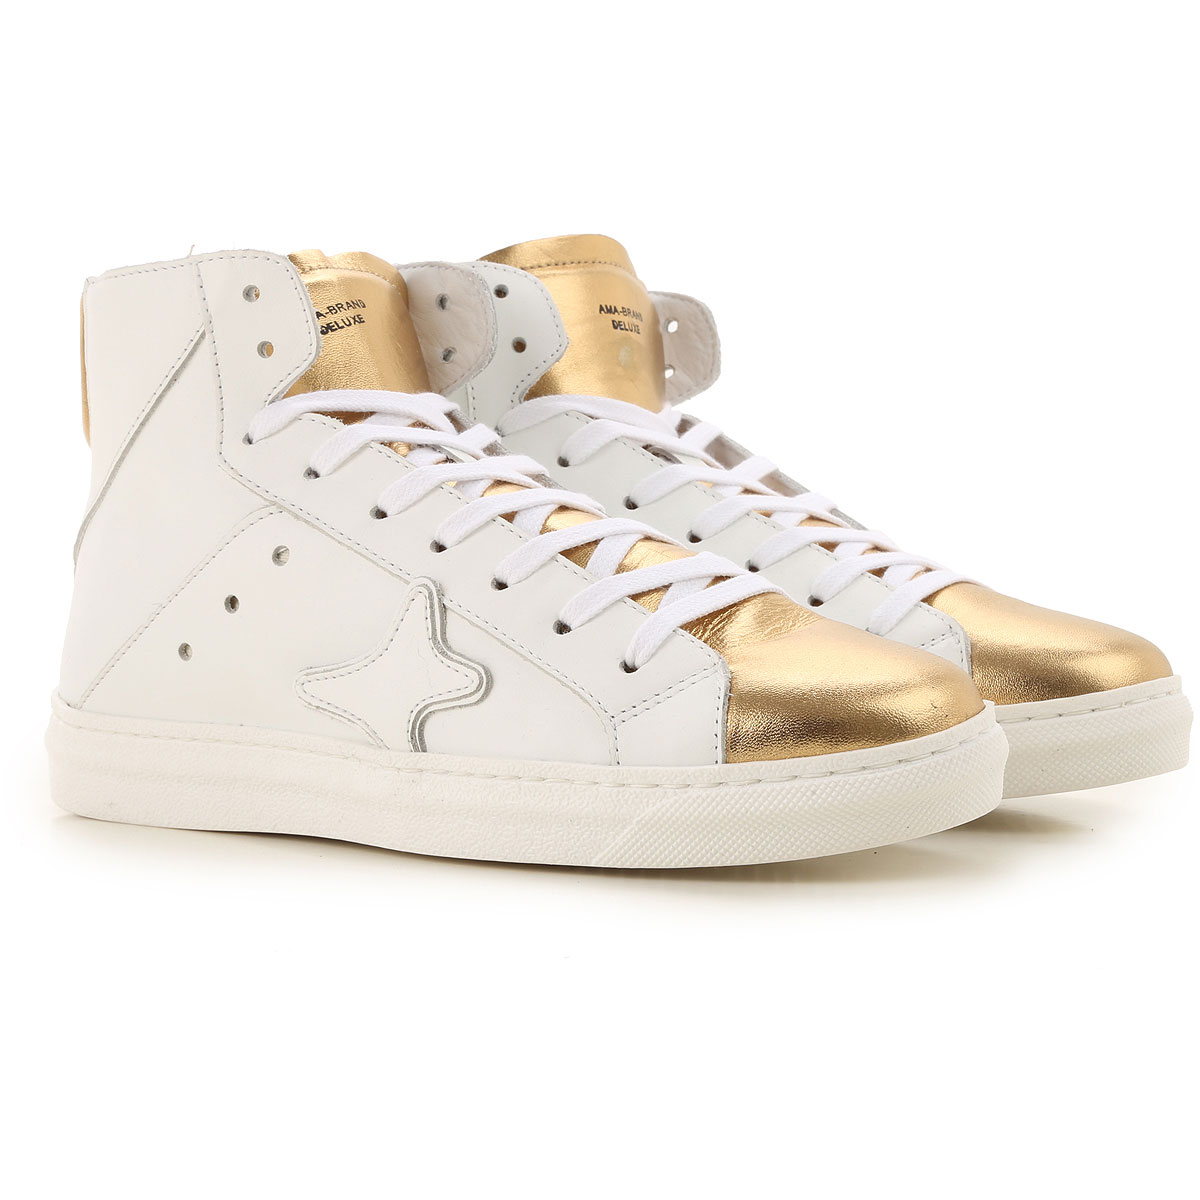 Ama Brand Sneakers for Women, White, Leather, 2019, EUR 36 - UK 3 - USA 5.5 EUR 37 - UK 4 - USA 6.5 EUR 38 - UK 5 - USA 7.5 EUR 39 - UK 6 - USA 8.5